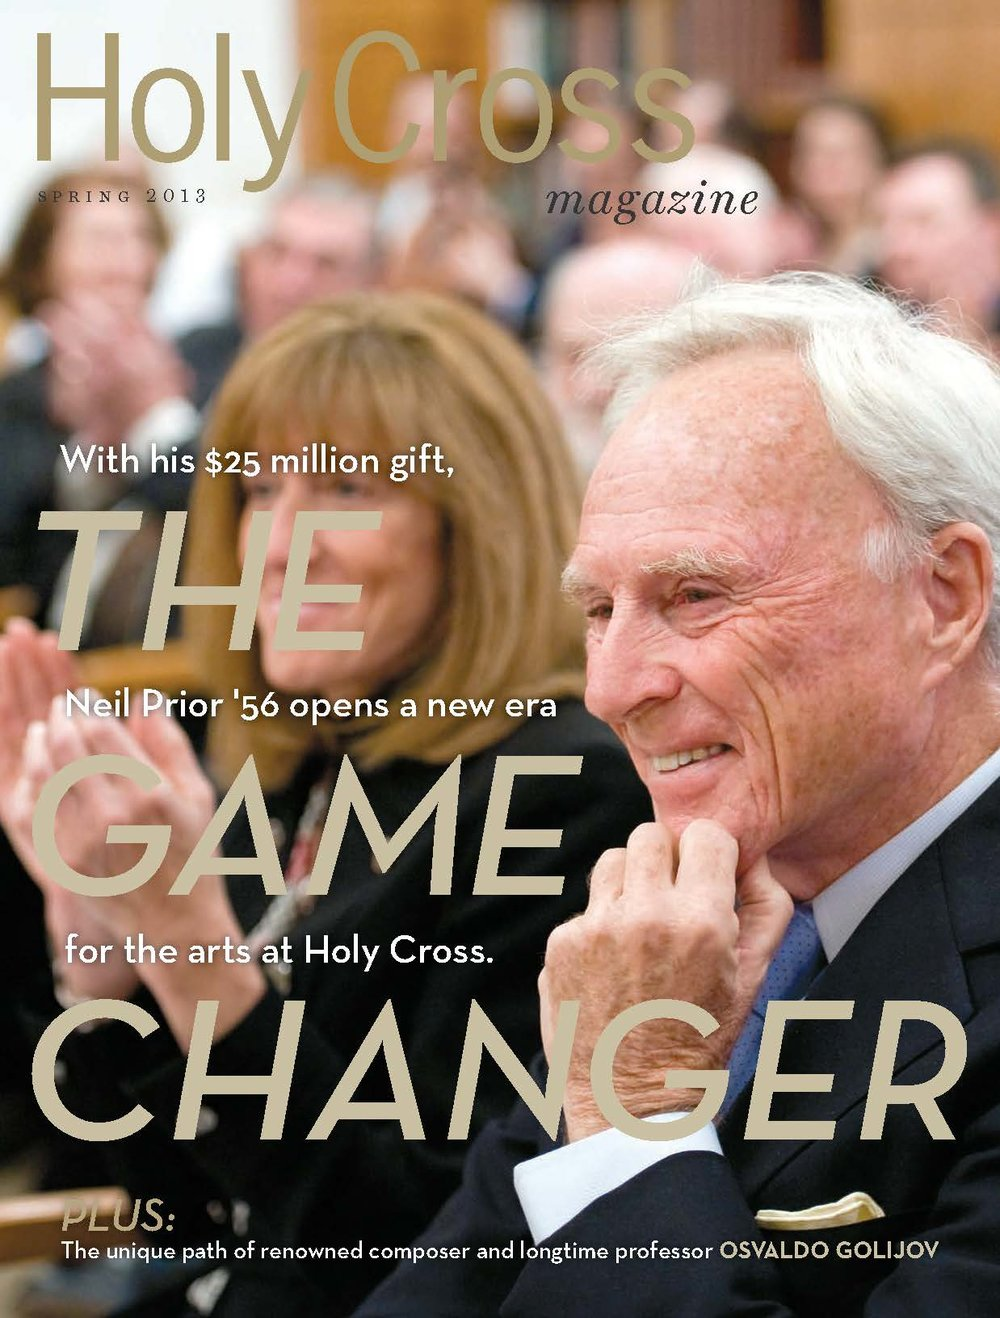 Holy Cross Magazine, 2013